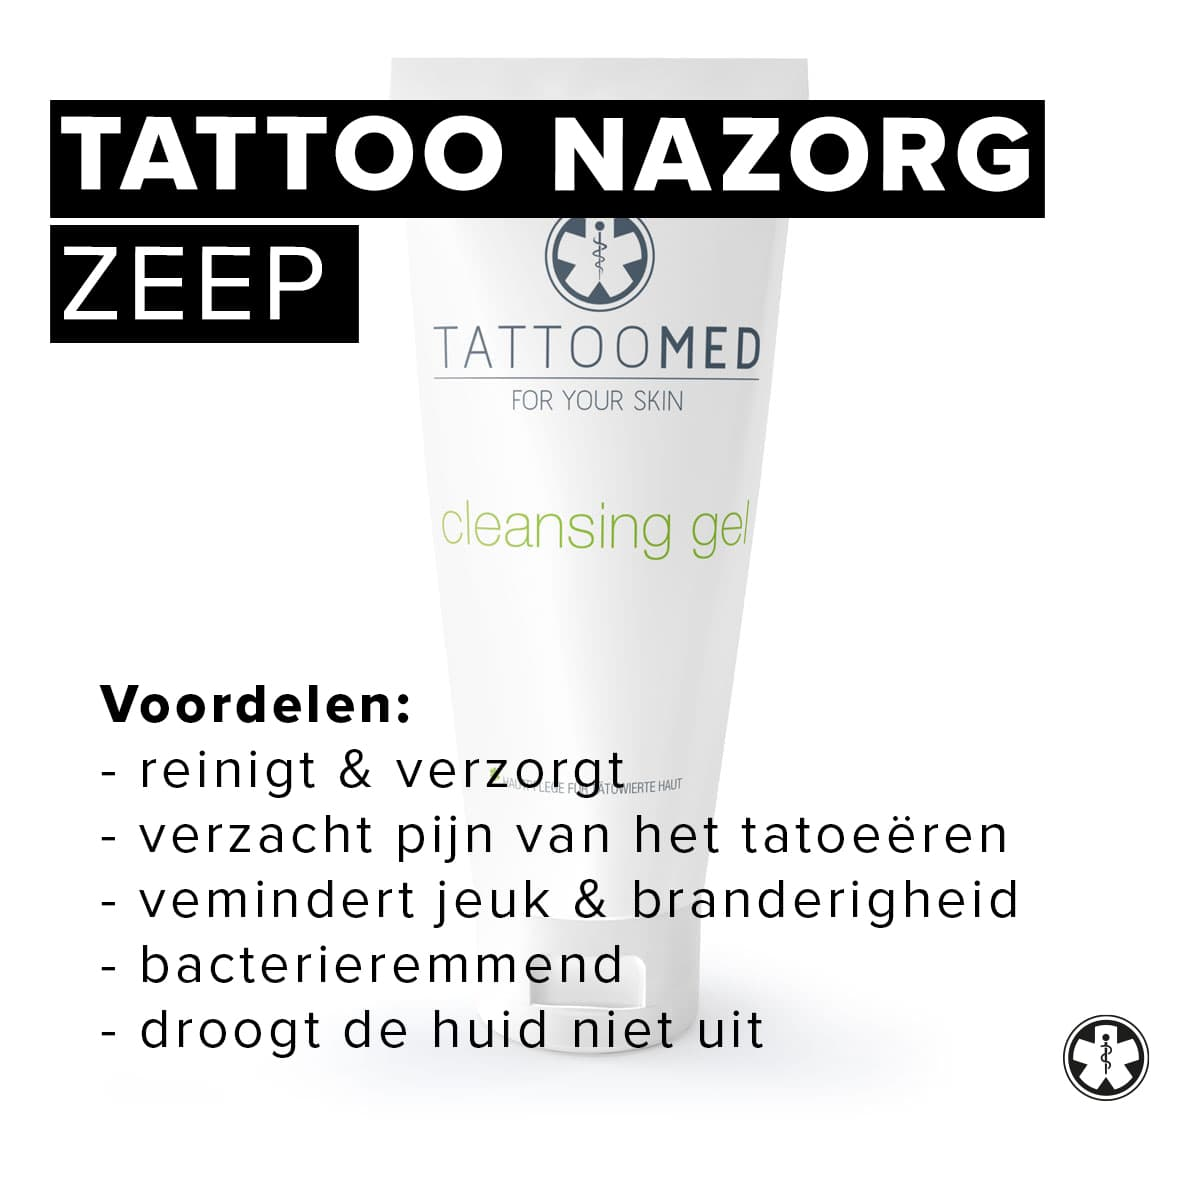 Tattoomed | Tattoo zeep